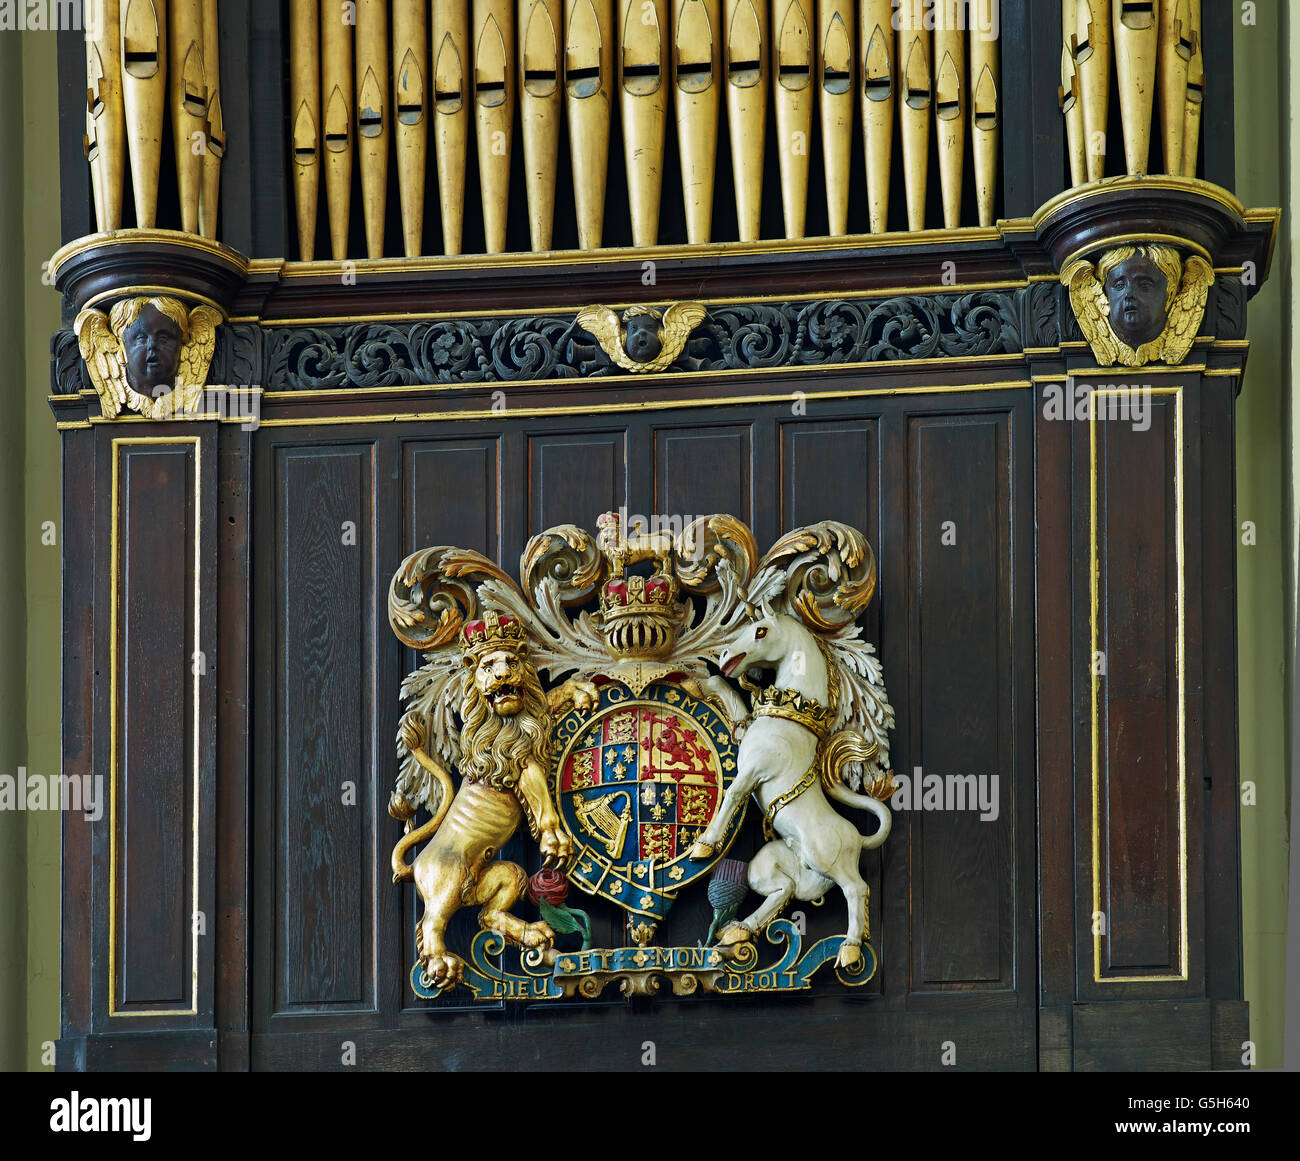 St Edmund King and Martyr, Church in the City of London. Royal Stuart Coat of Arms - Stock Image